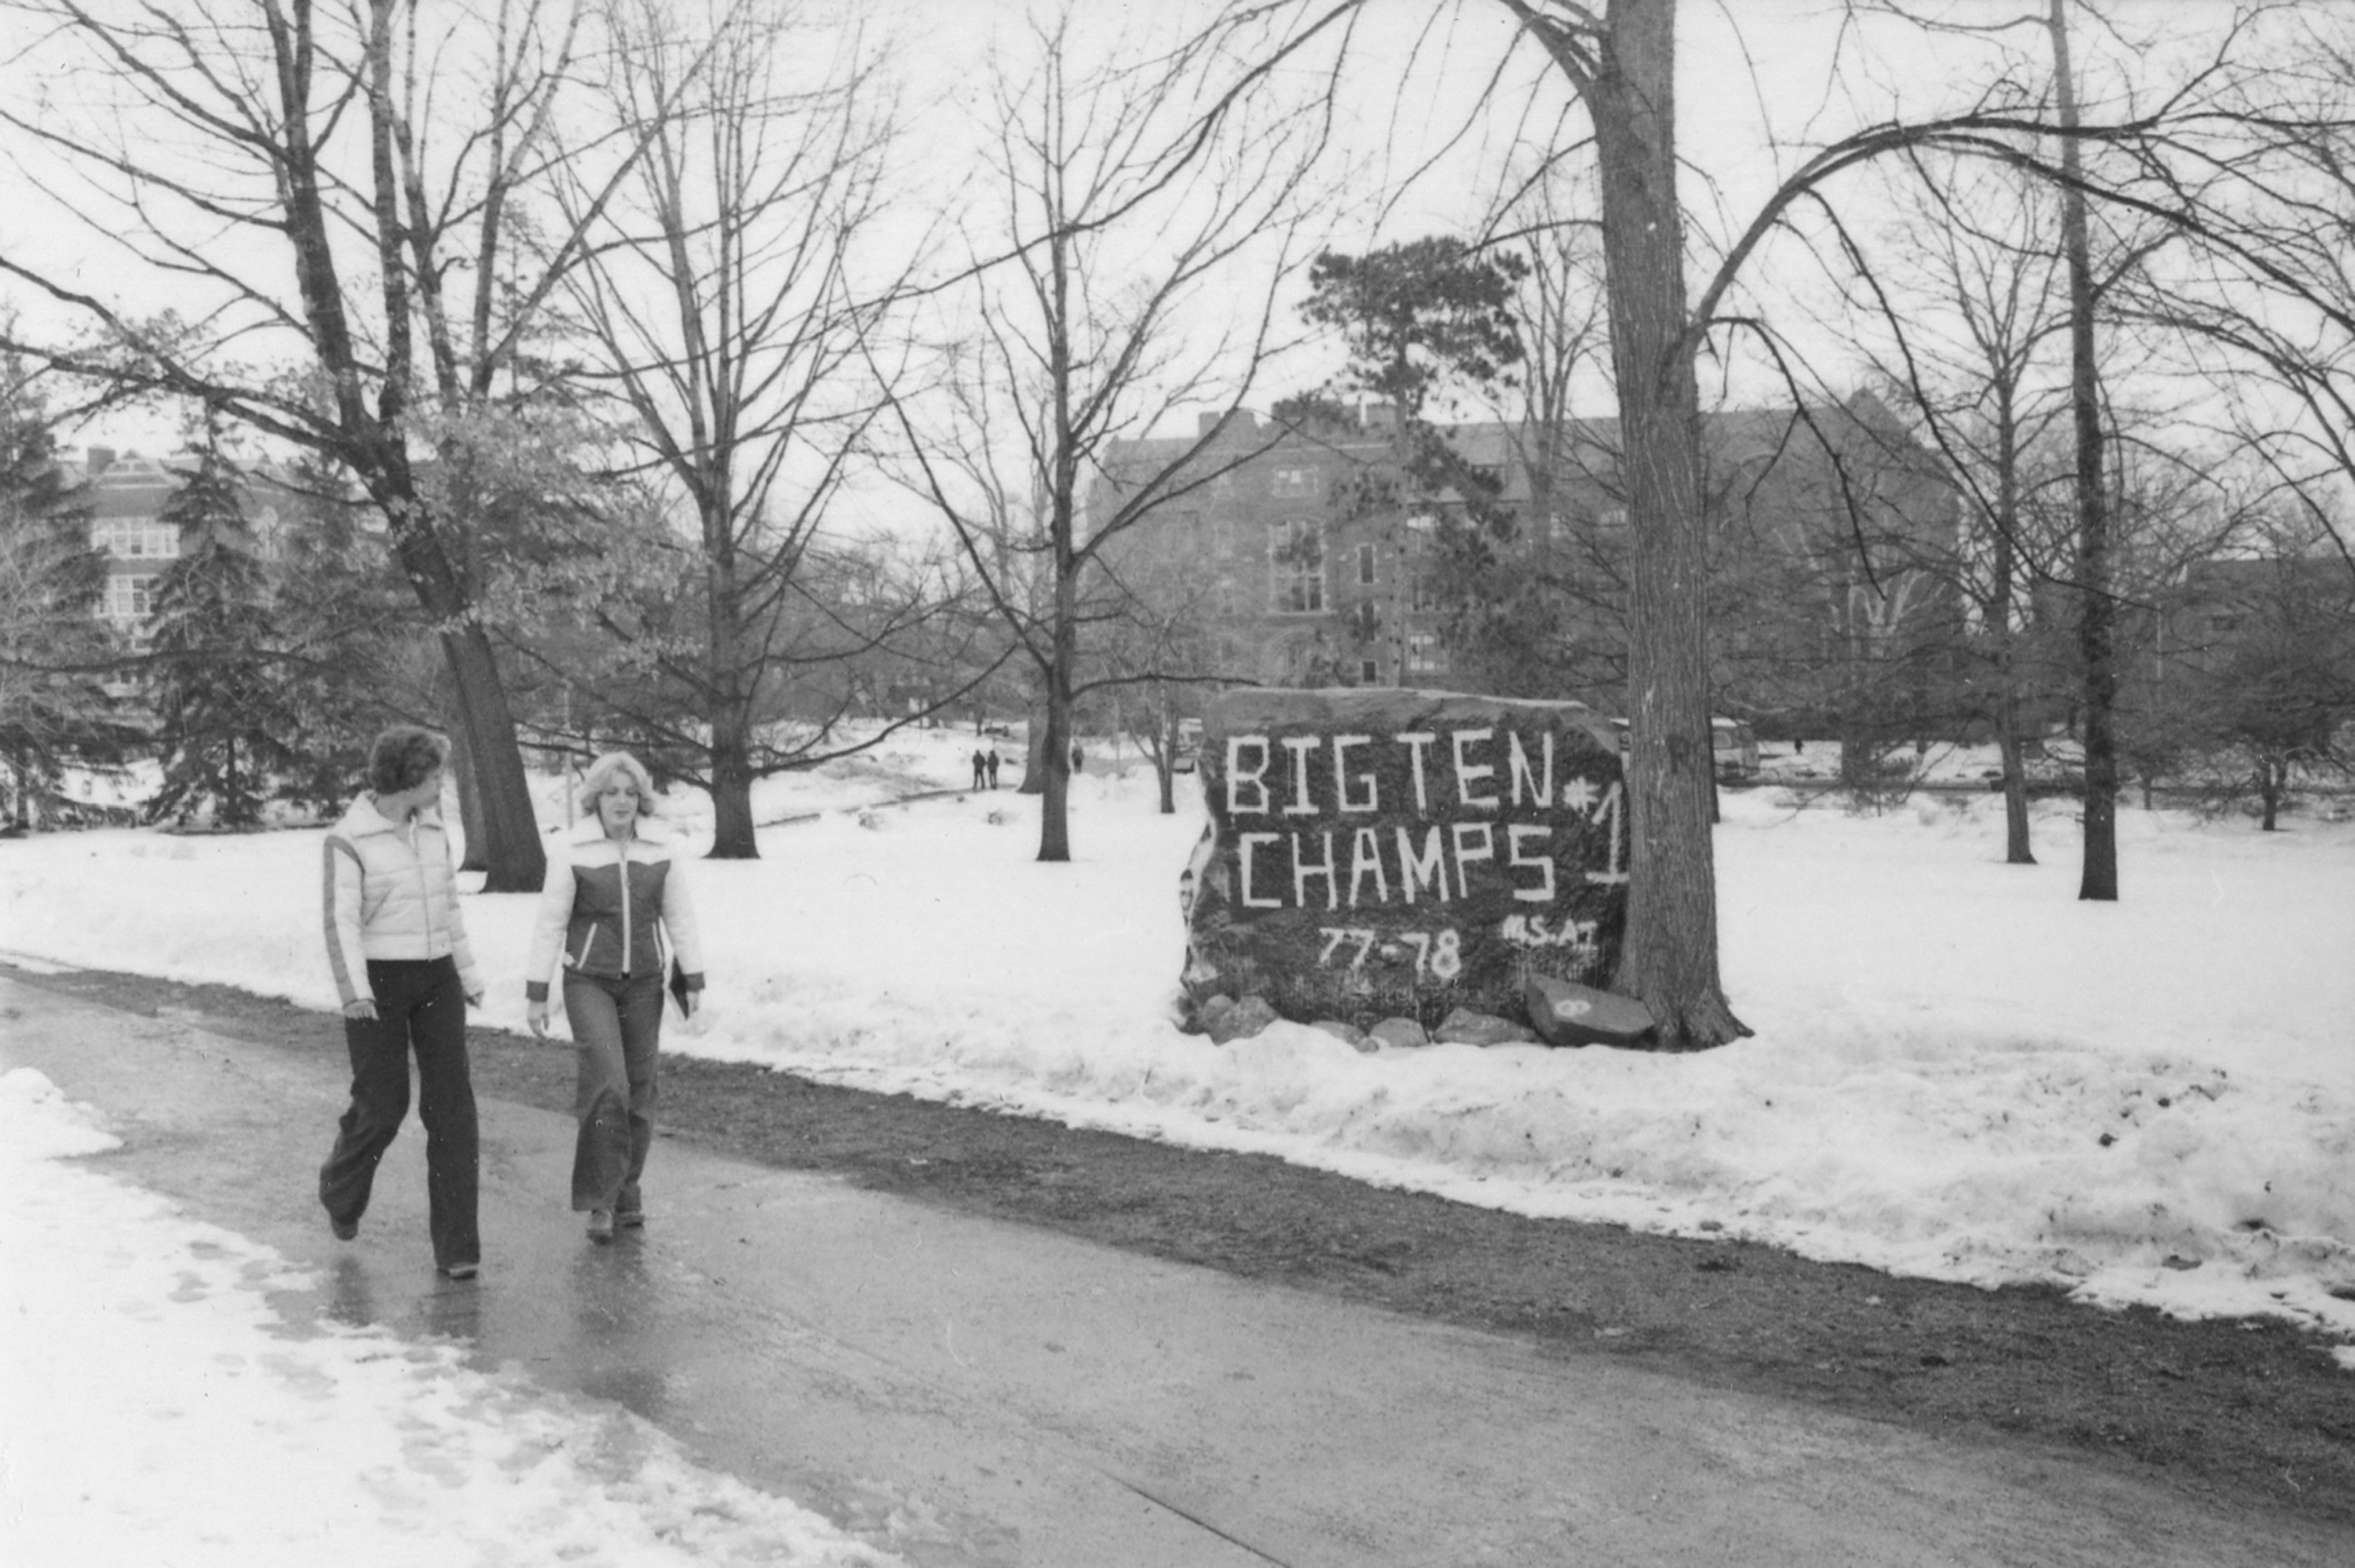 The Rock and Big Ten, circa 1978